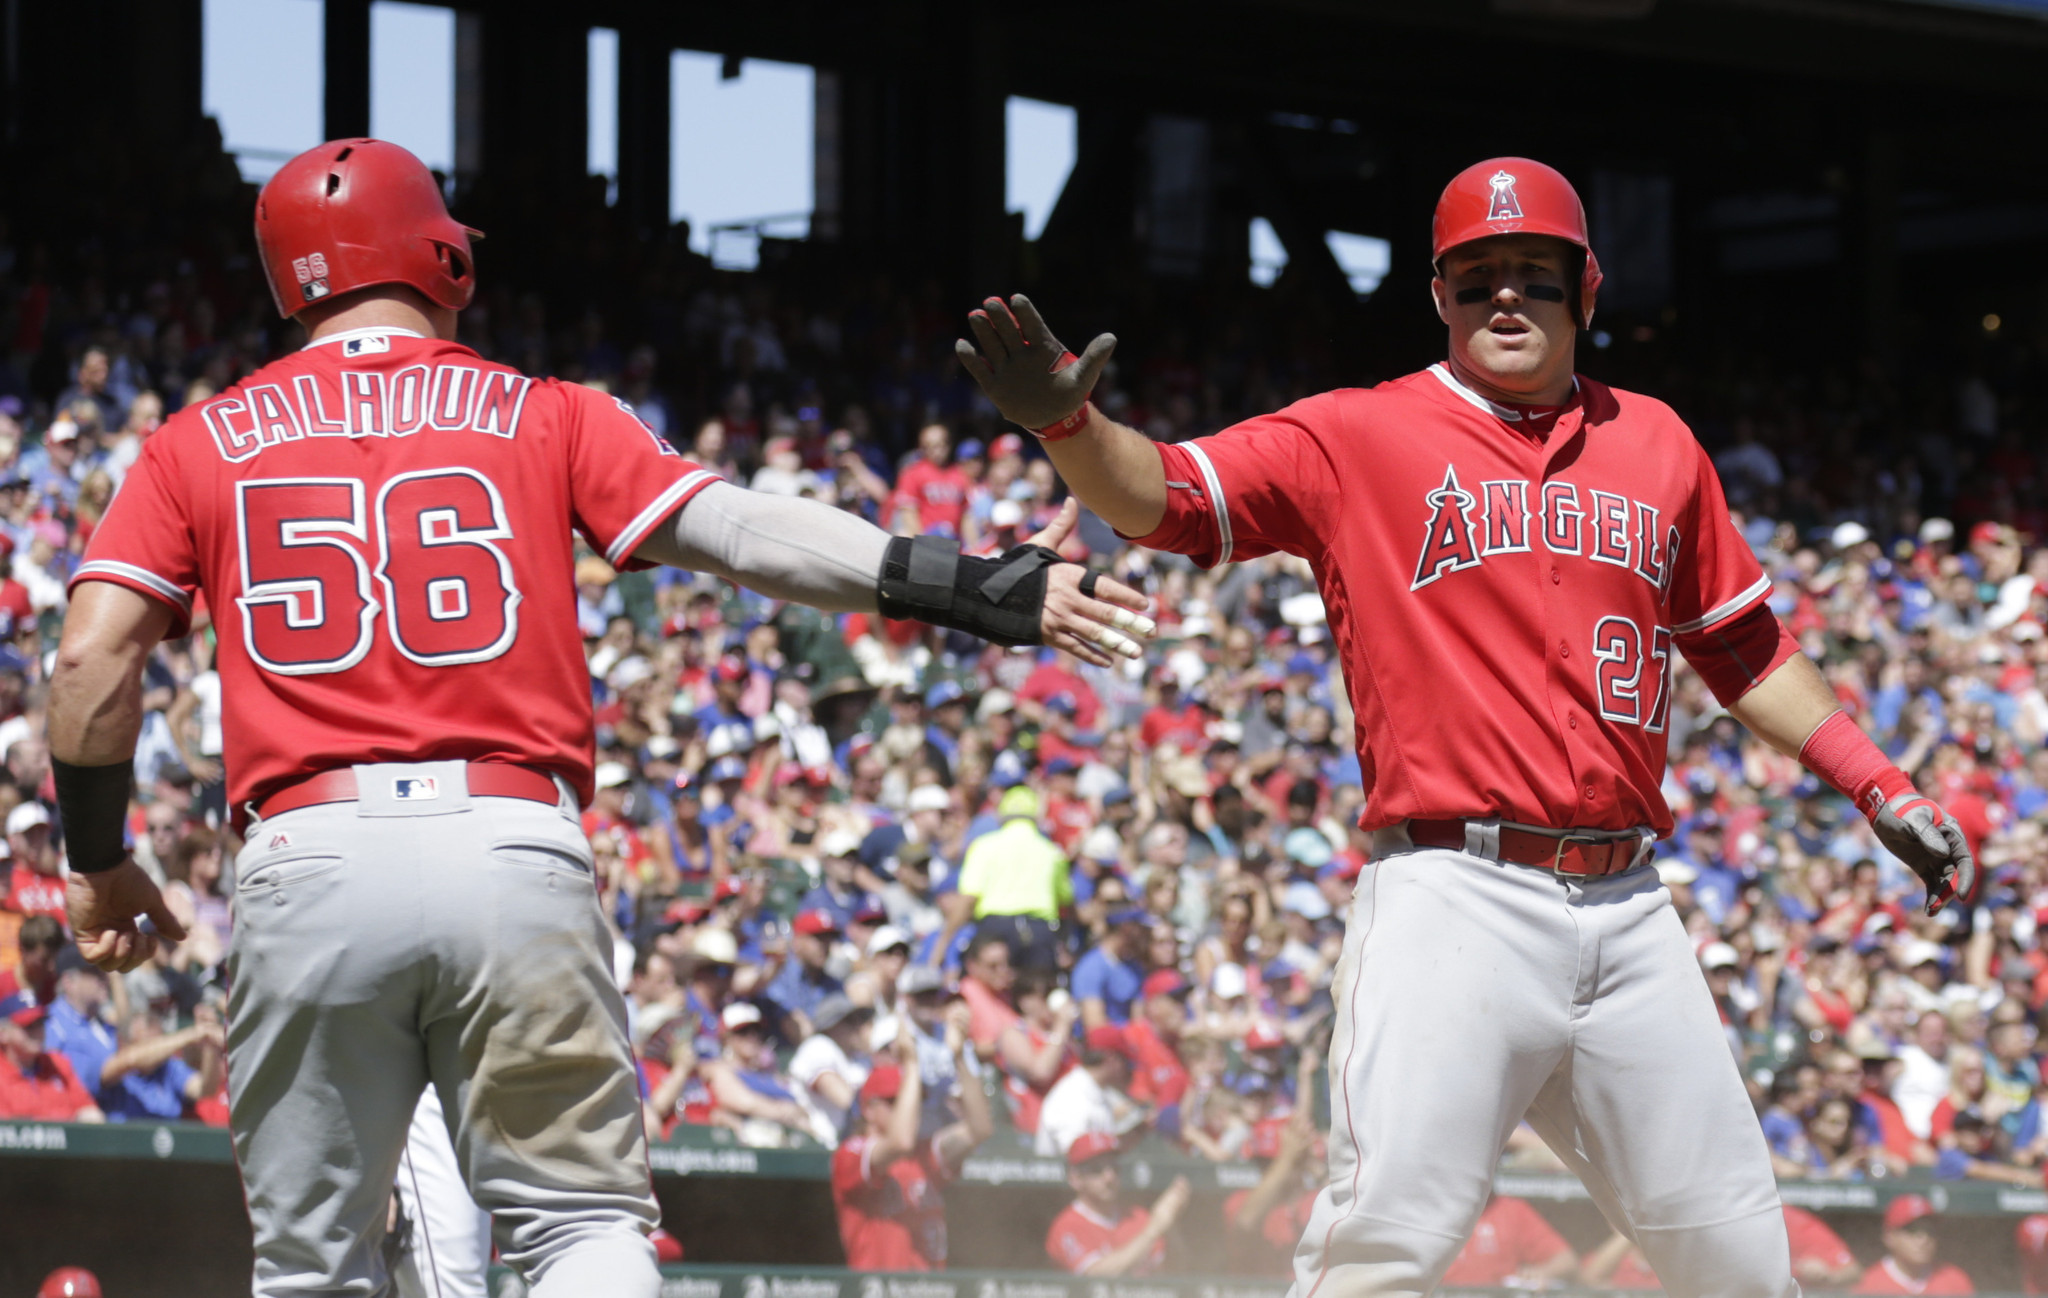 La-sp-angels-rangers-20160502